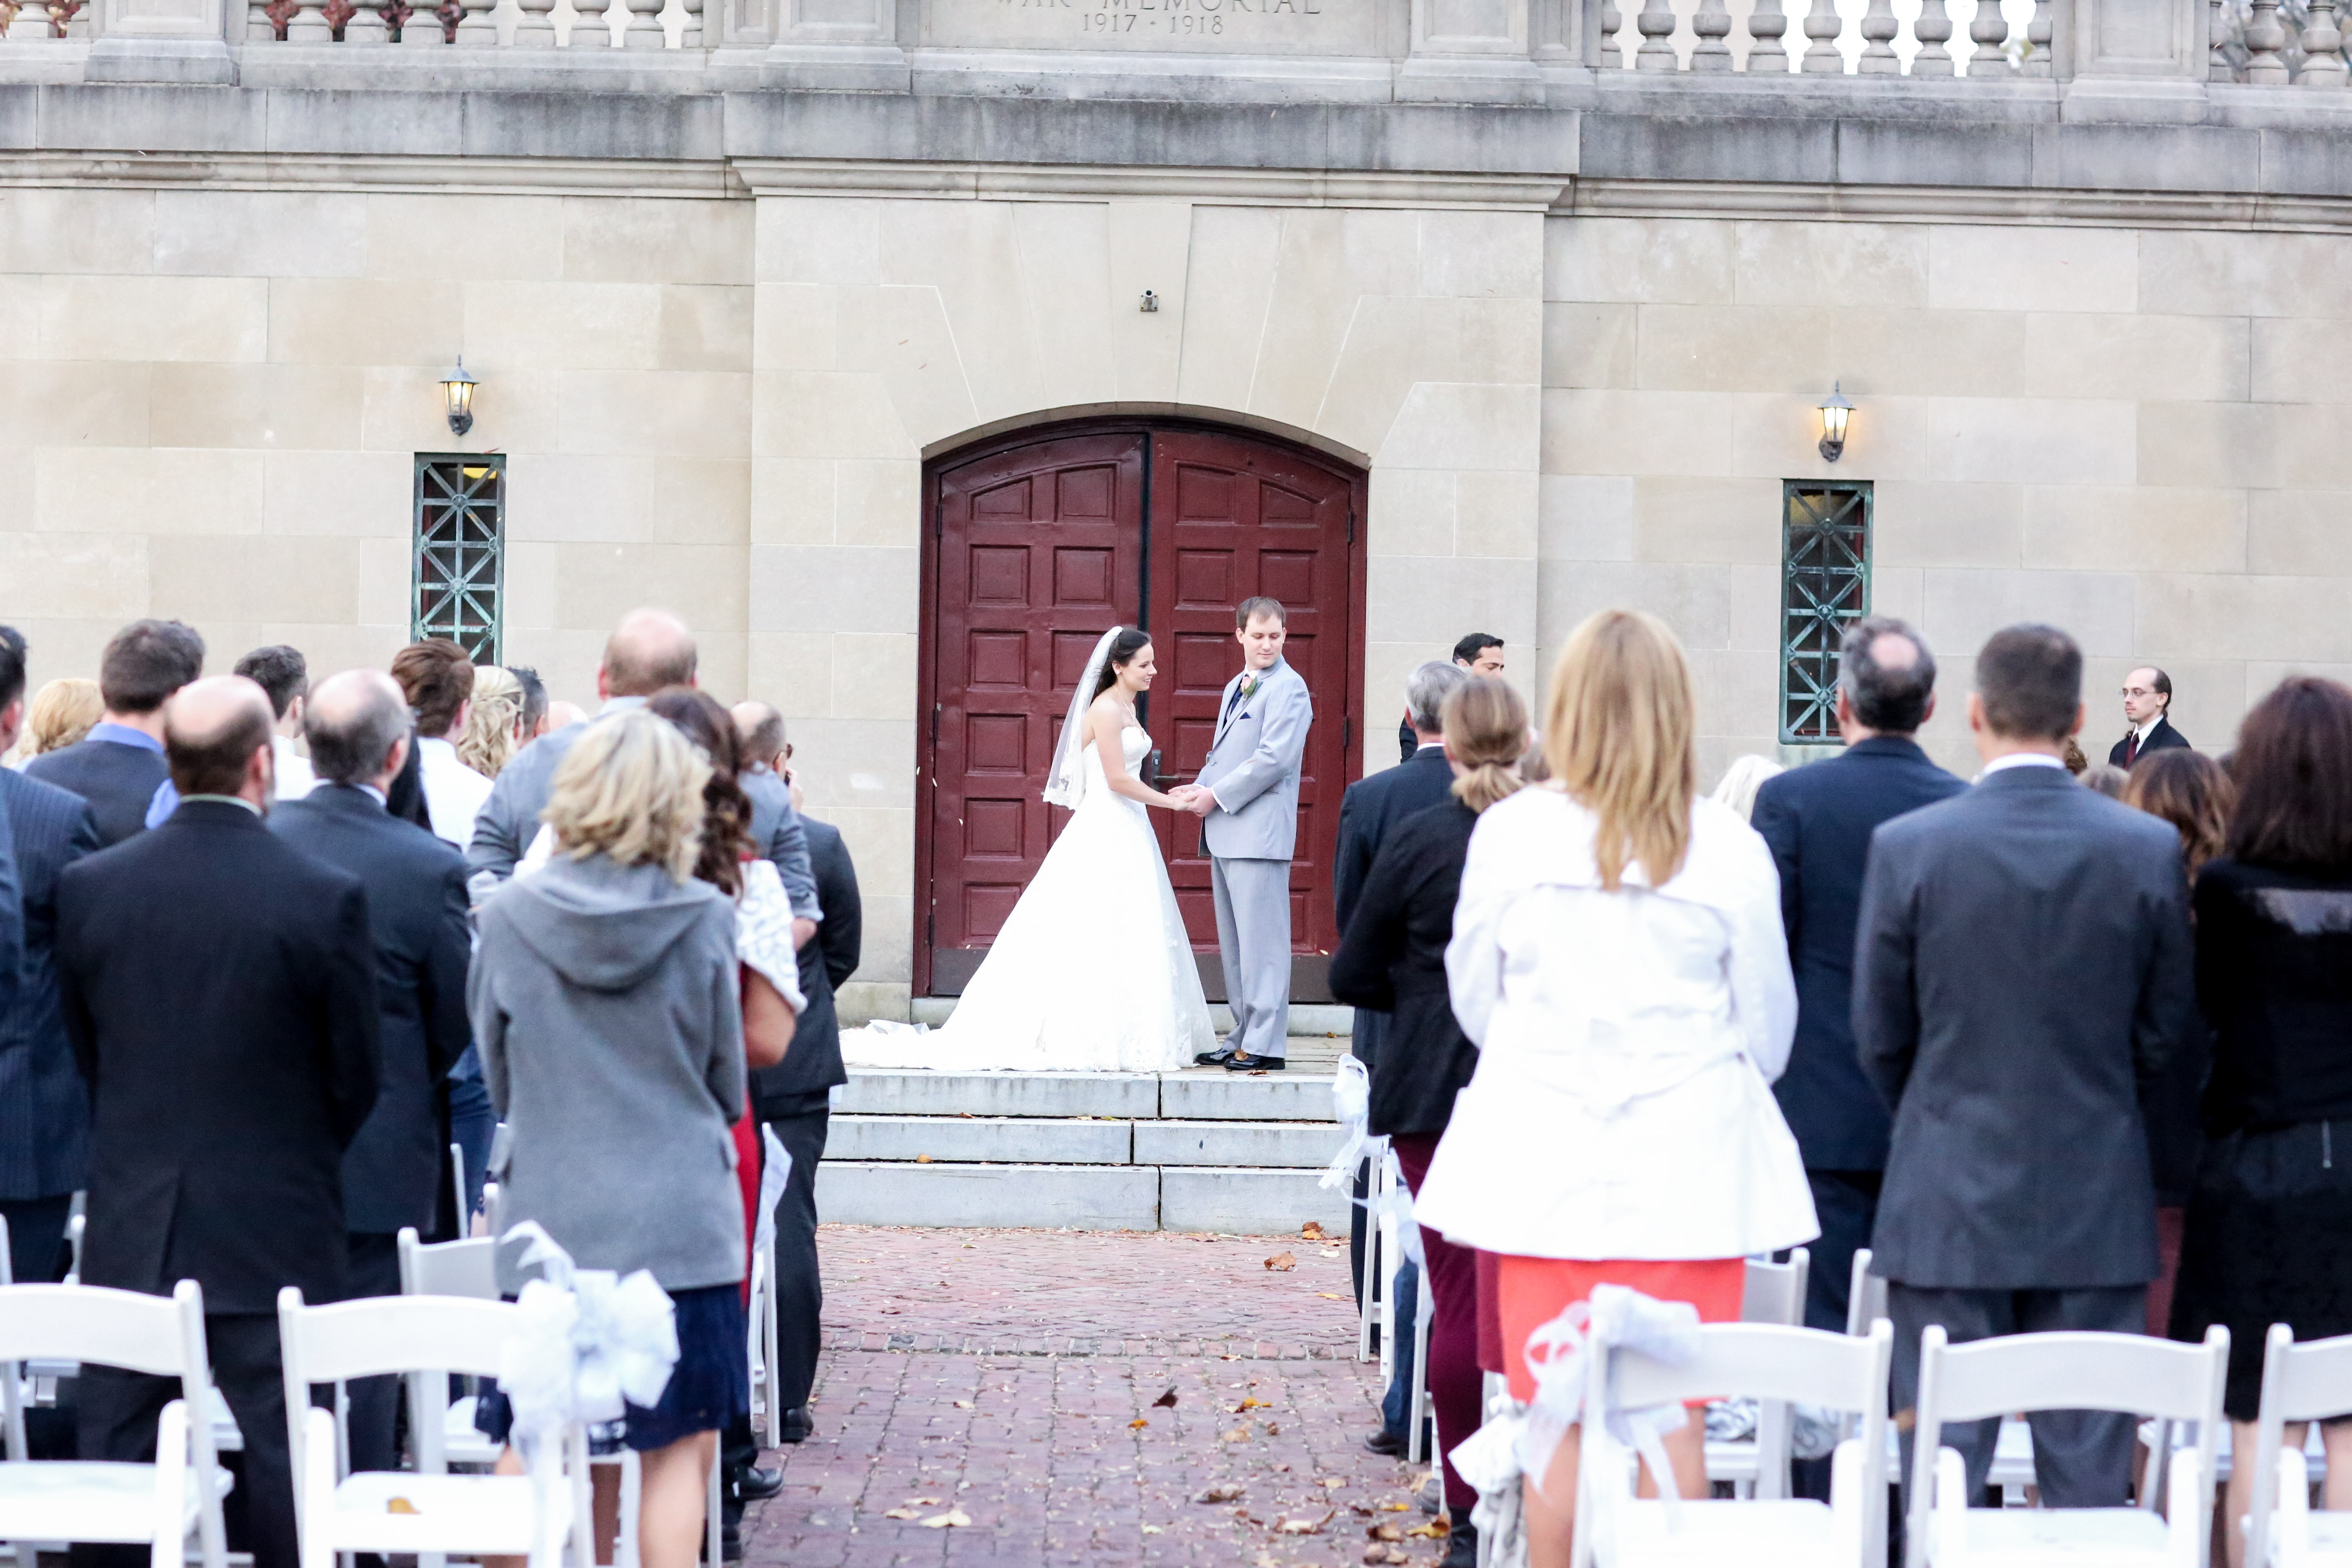 carillon-wedding-richmond-virginia-wedding-heather-michelle-photography-1-of-1-38